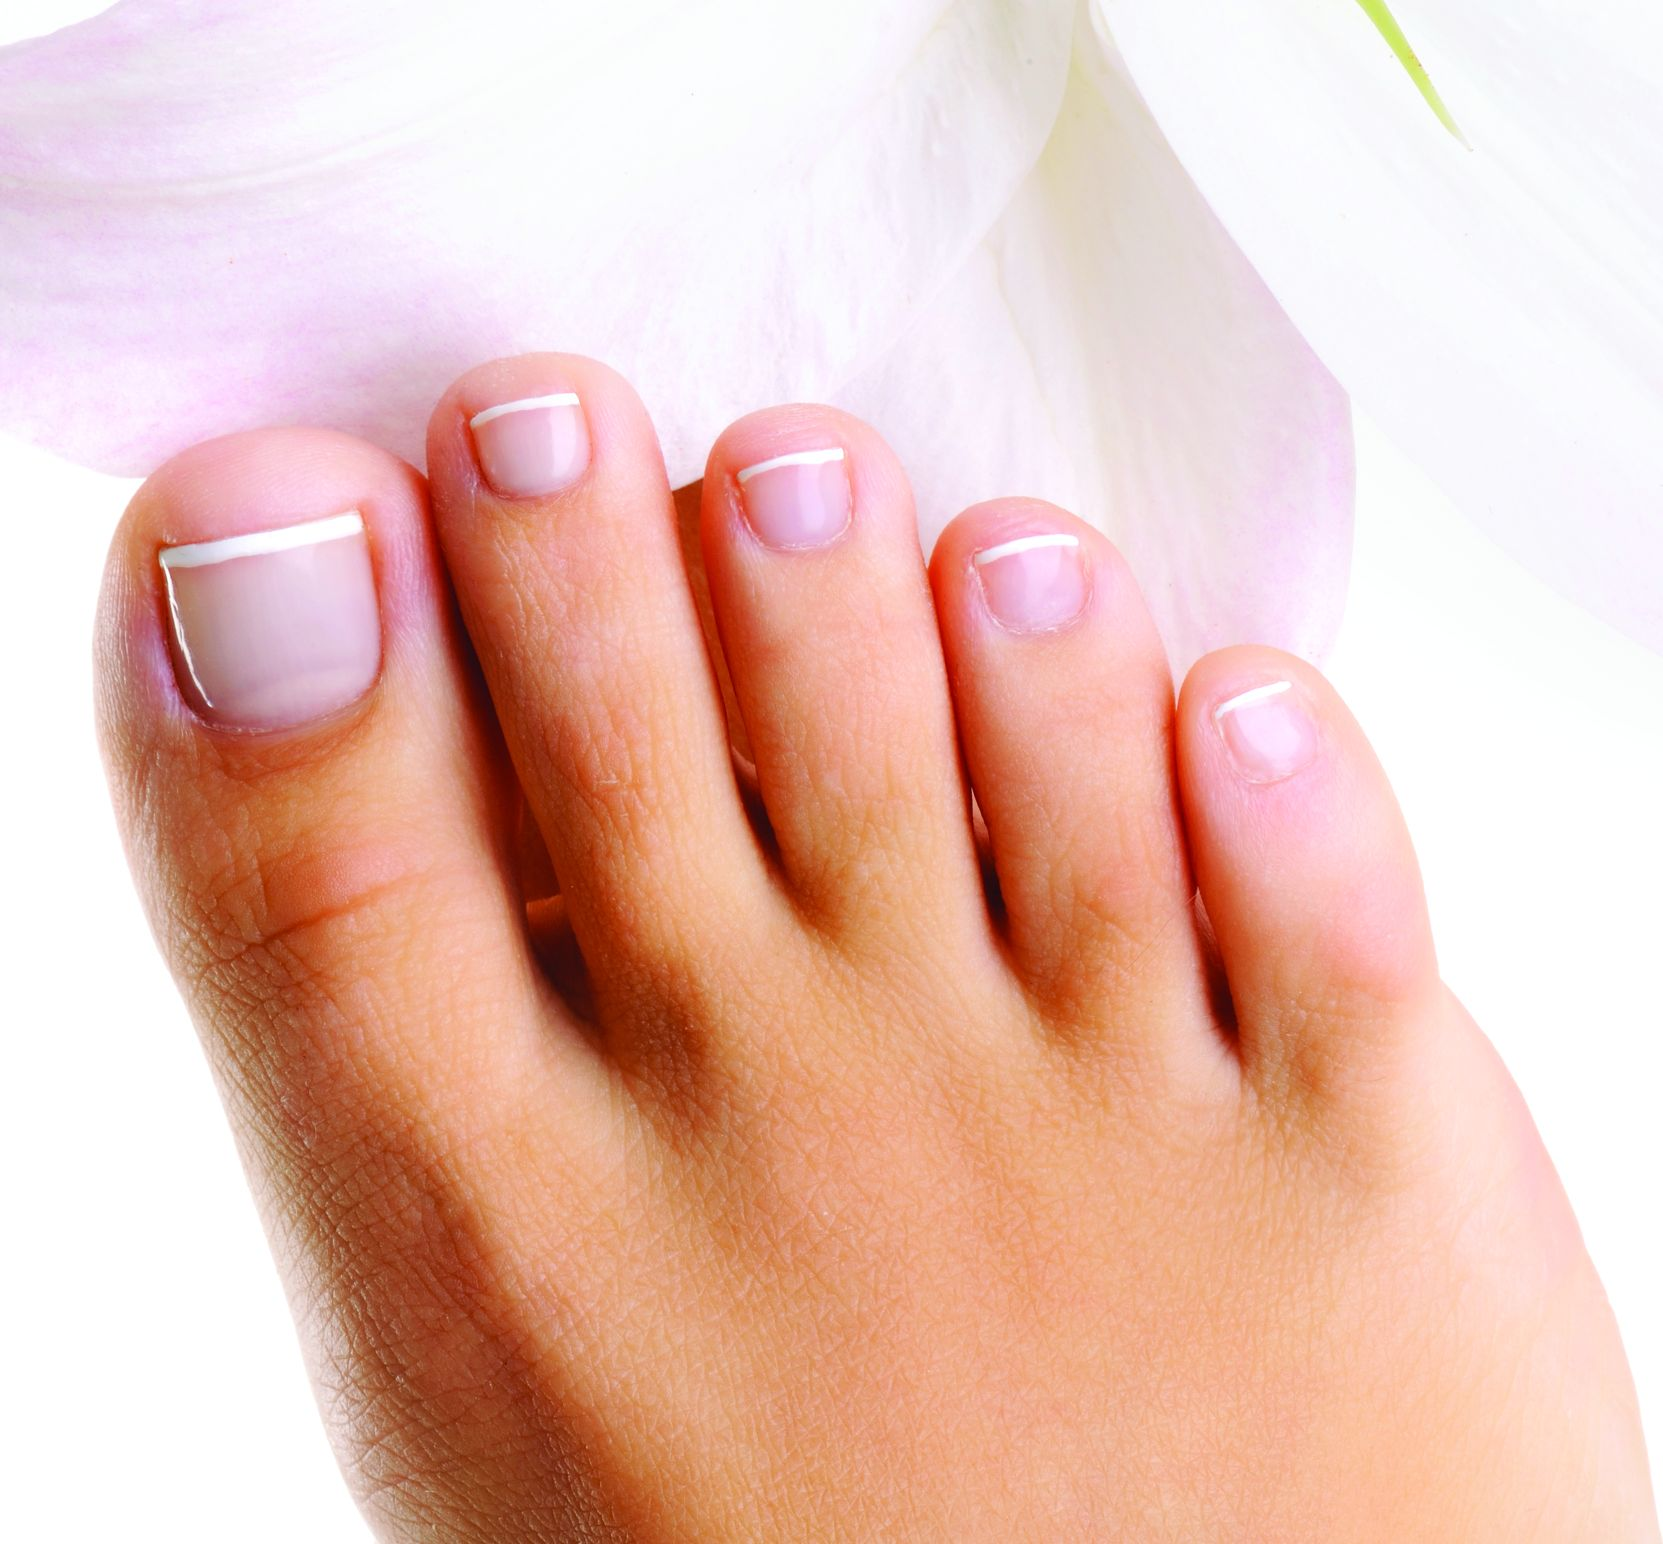 Reasons To Cleanse The Feet Of Unsightly And Horrible Fungus